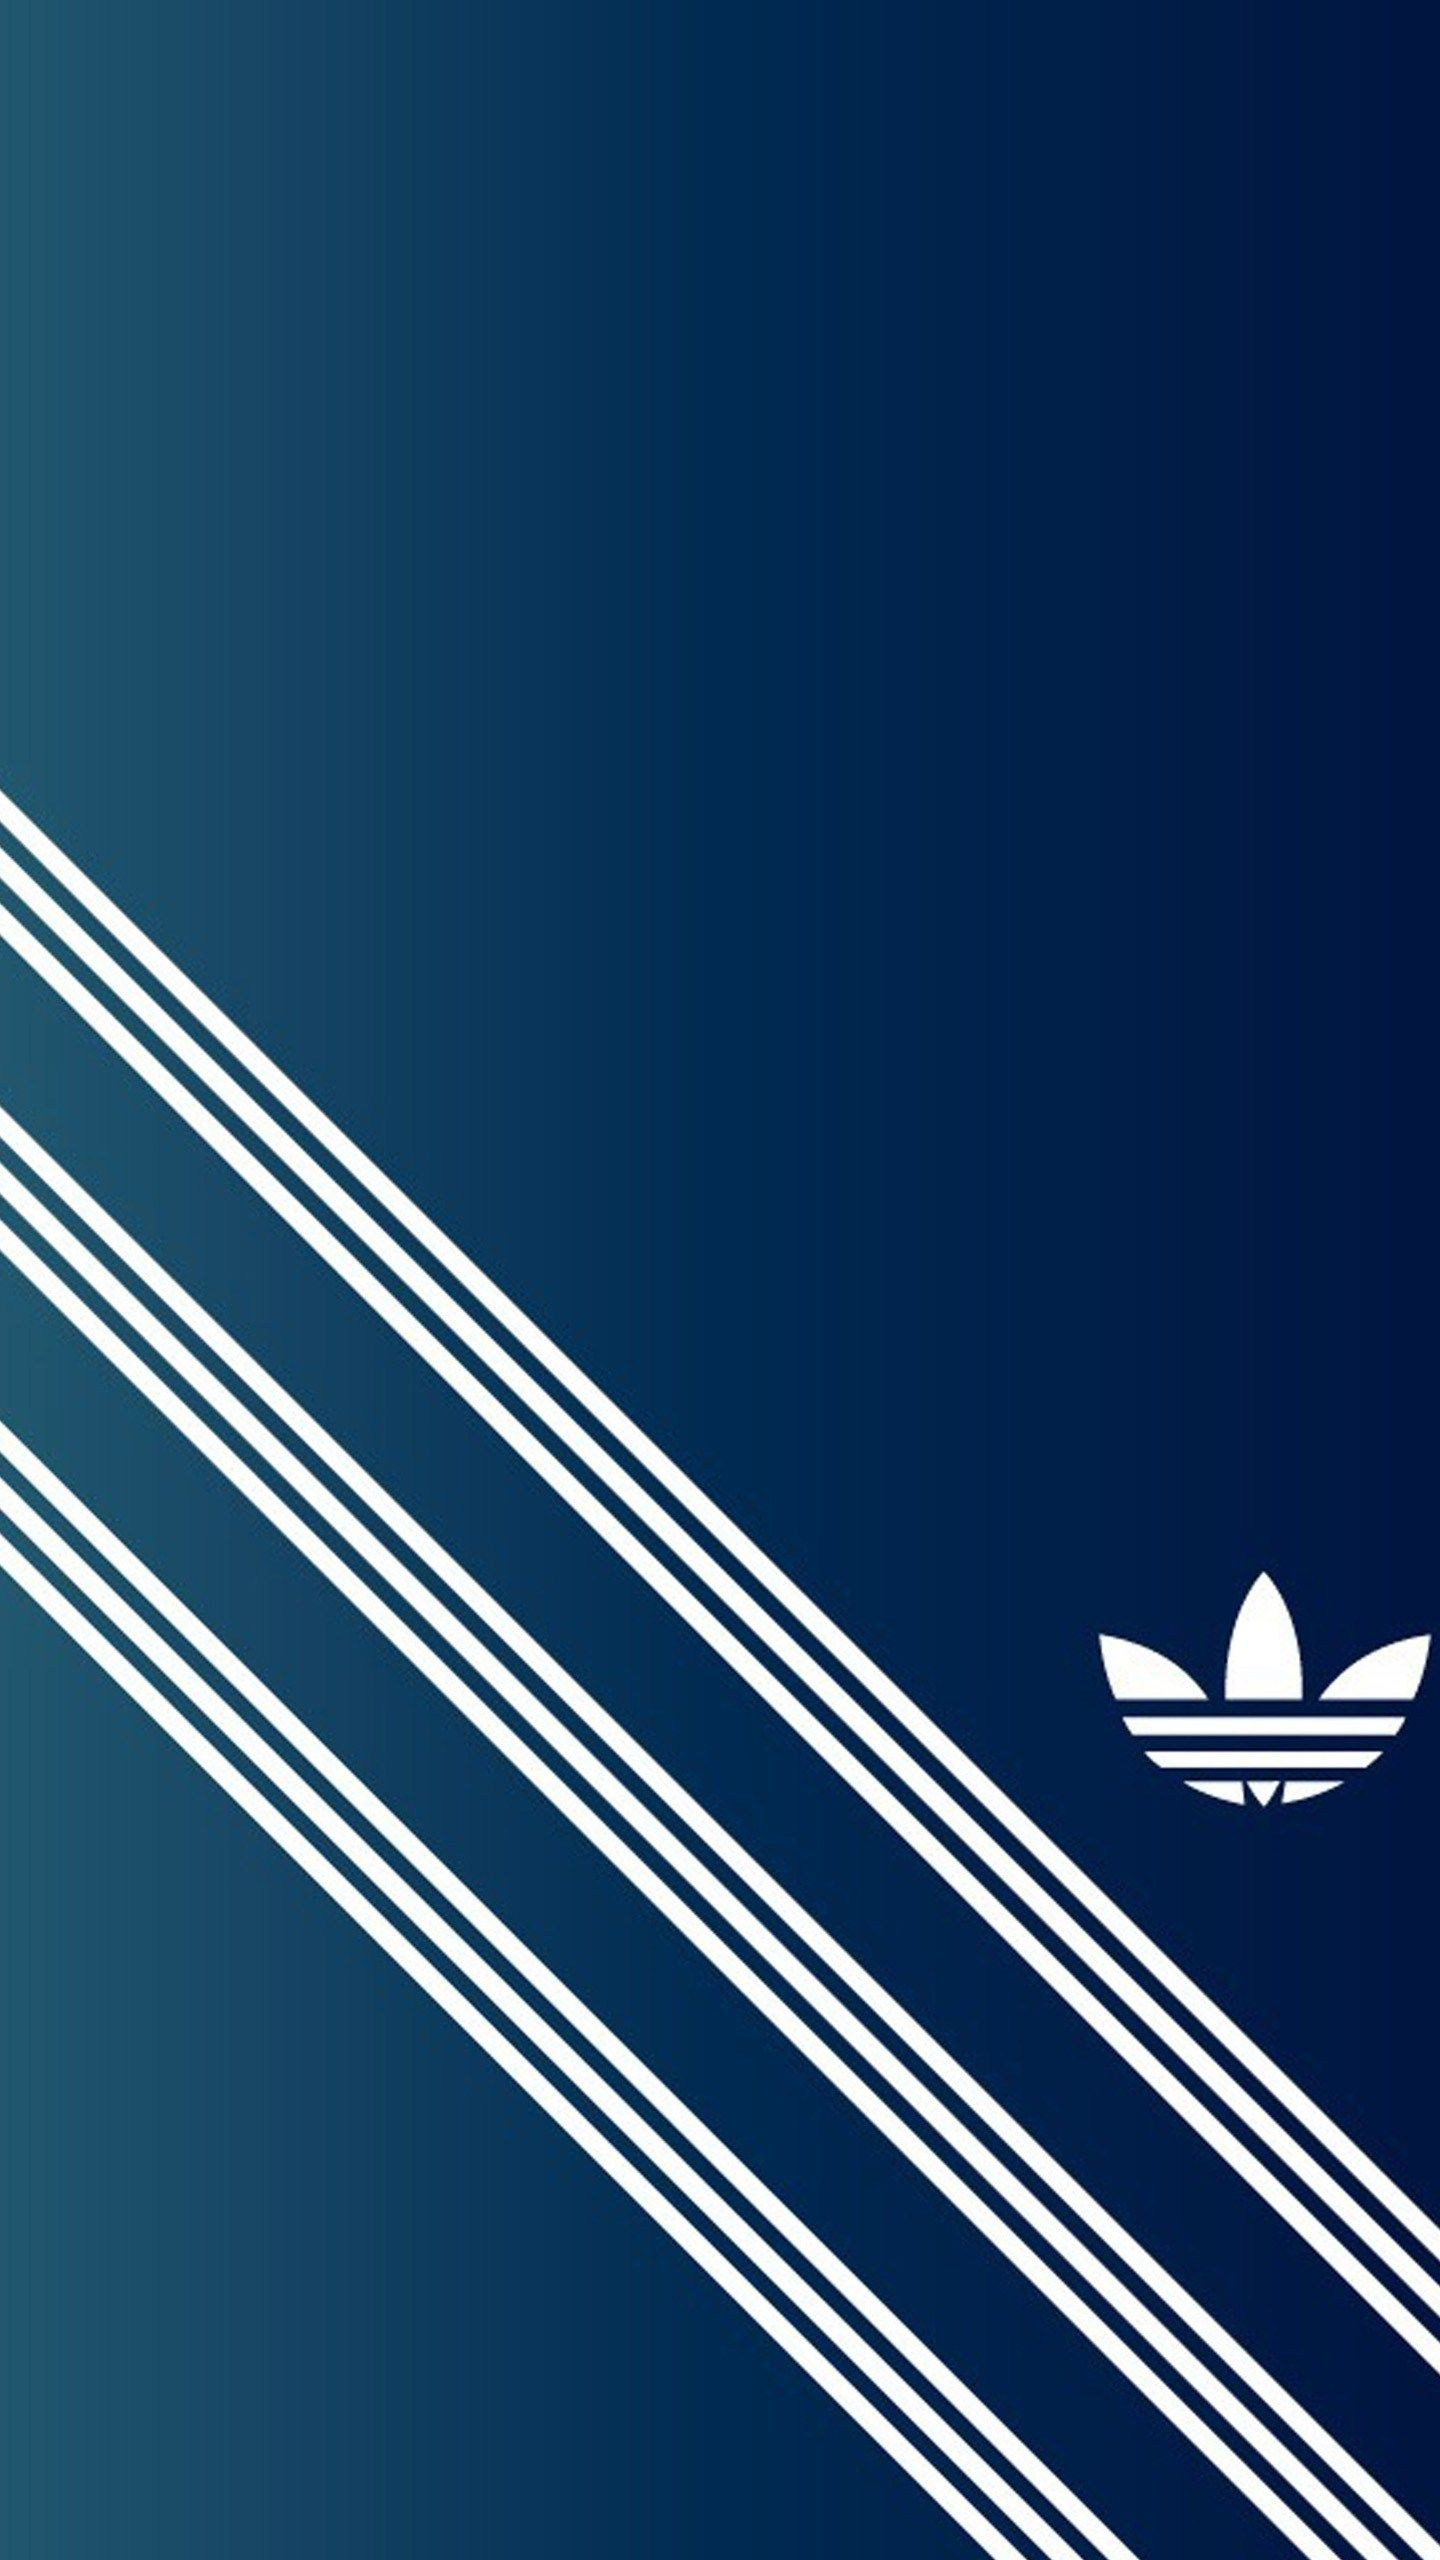 Iphone X Wallpaper Full Hd Lovely Iphone Adidas Wallpaper With